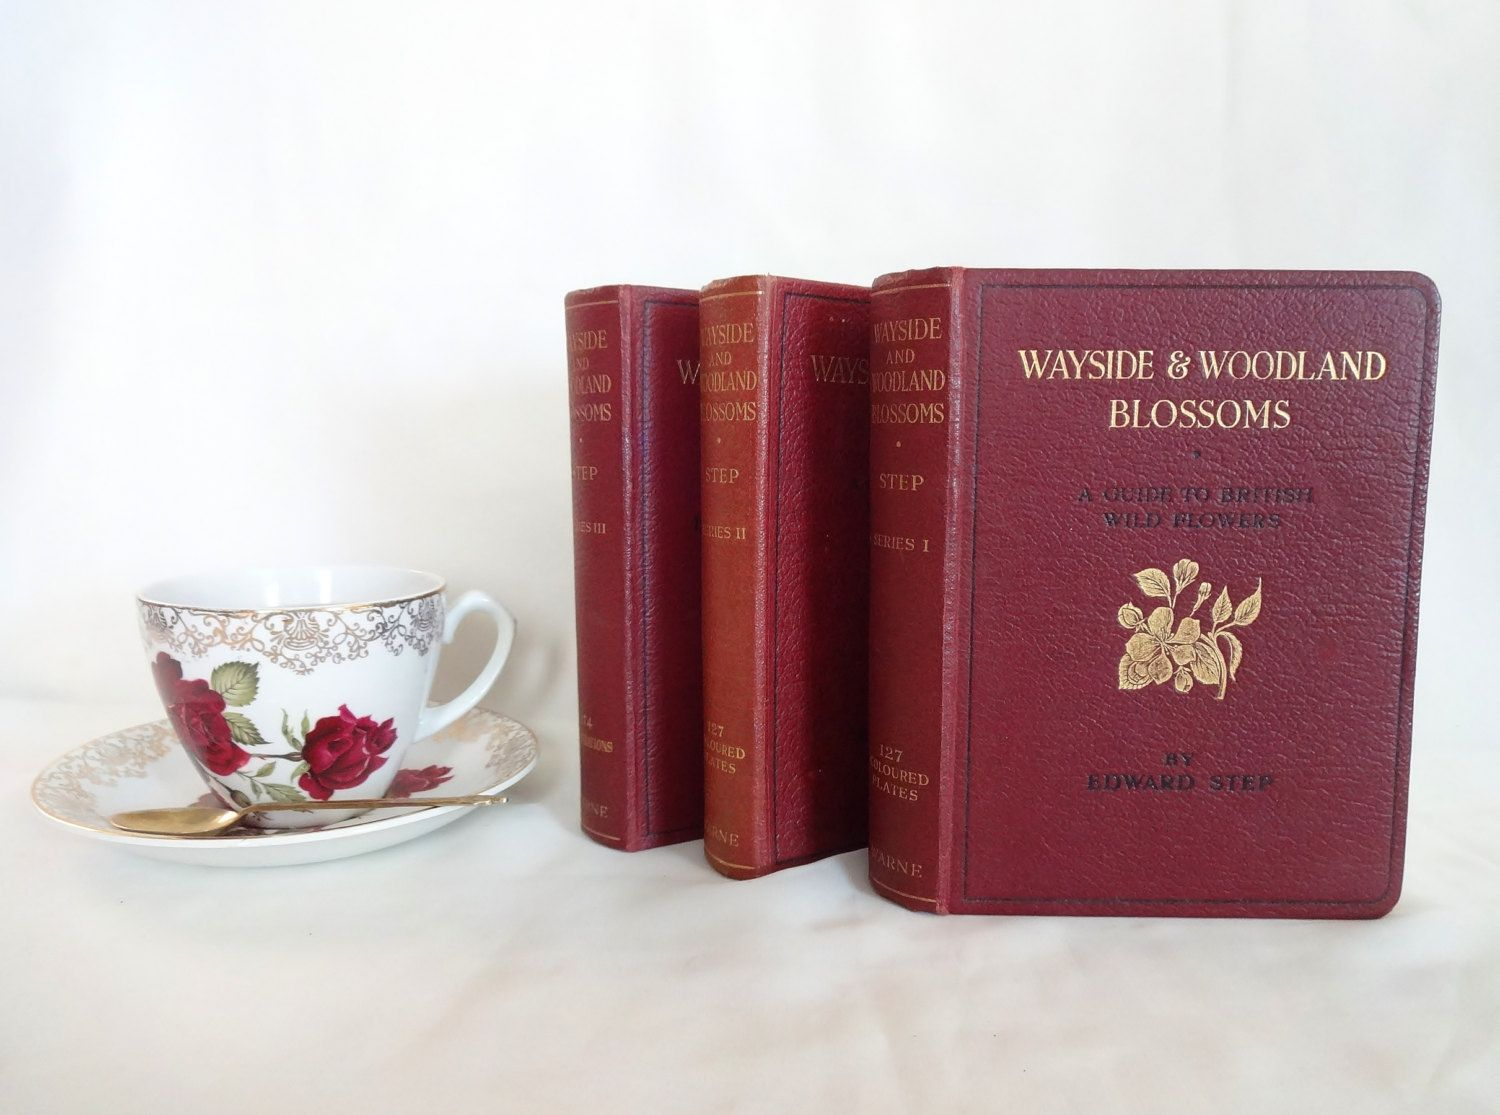 Wayside and Woodland Blossoms A Guide To British Wild Flowers In 3 Volumes / 1930 Warne and Co. / 100s of Beautiful Botanical Illustrations by BumperBoxofDelights on Etsy